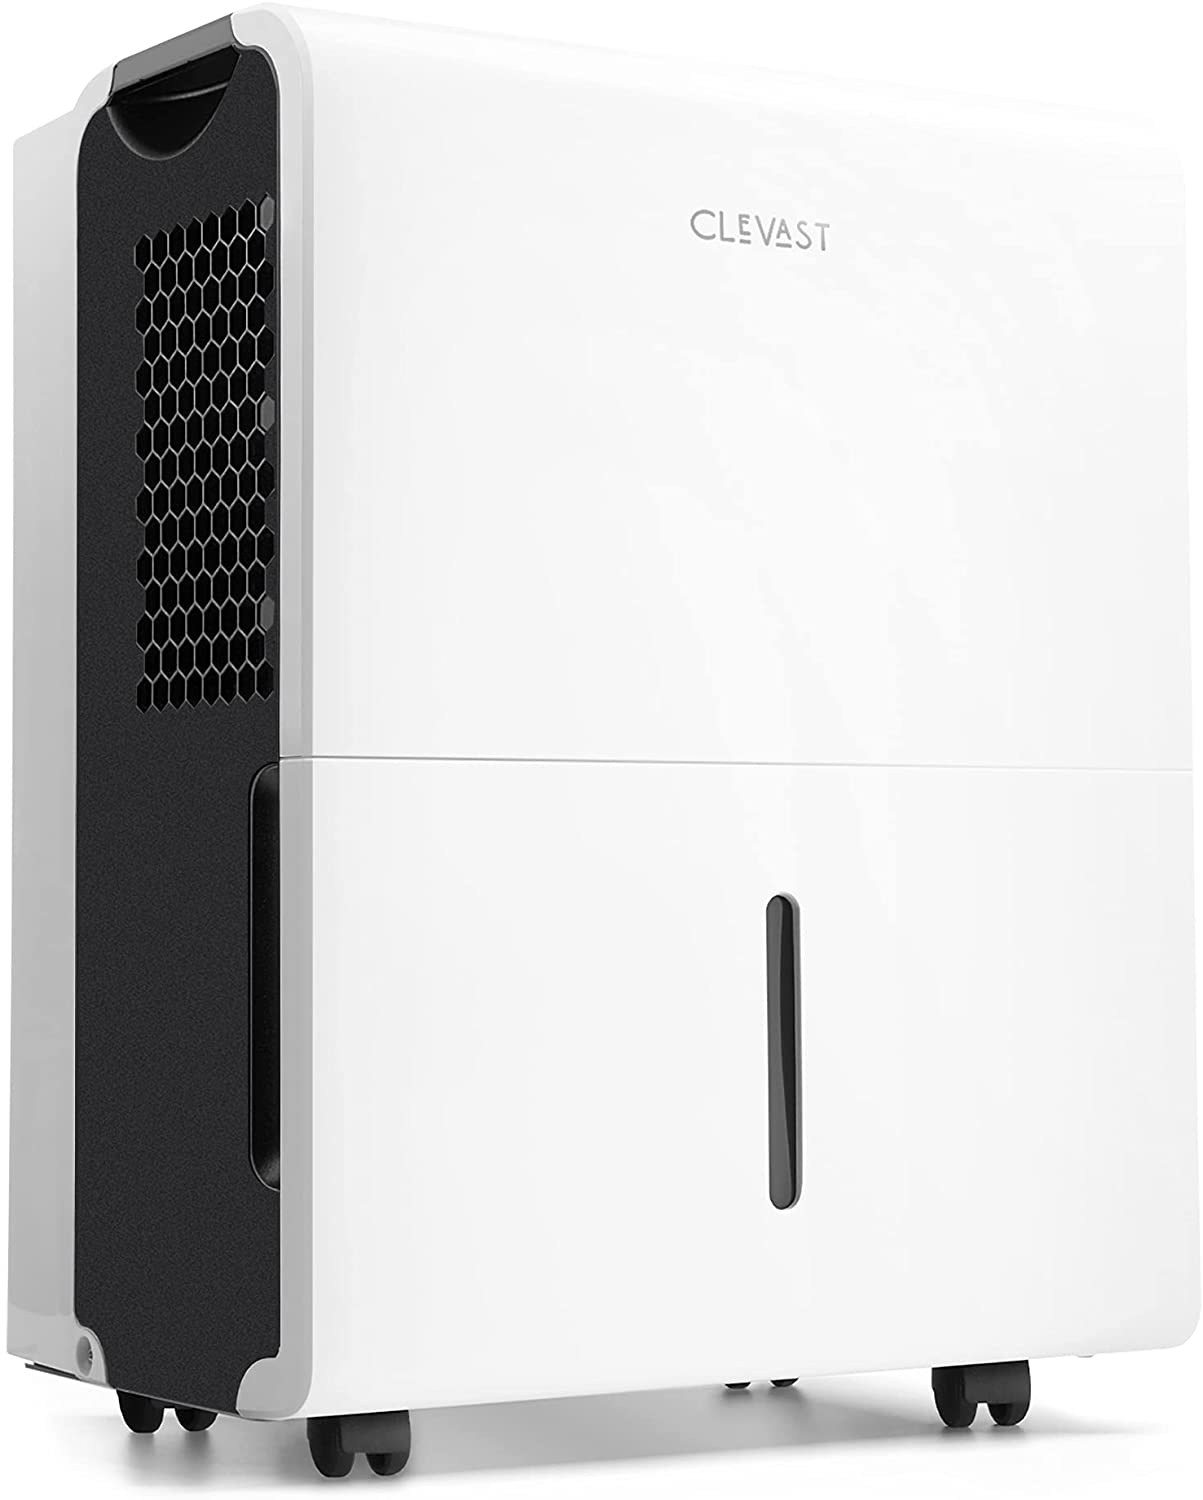 CLEVAST 1,500 Sq. Ft Energy Star 22 Pints Dehumidifier with Reusable Air Filter for Home, Basement, Living Room, Garage and Closet - Efficiently Removes Moisture, 0.8 Gallons Removable Water Tank, UL Listed